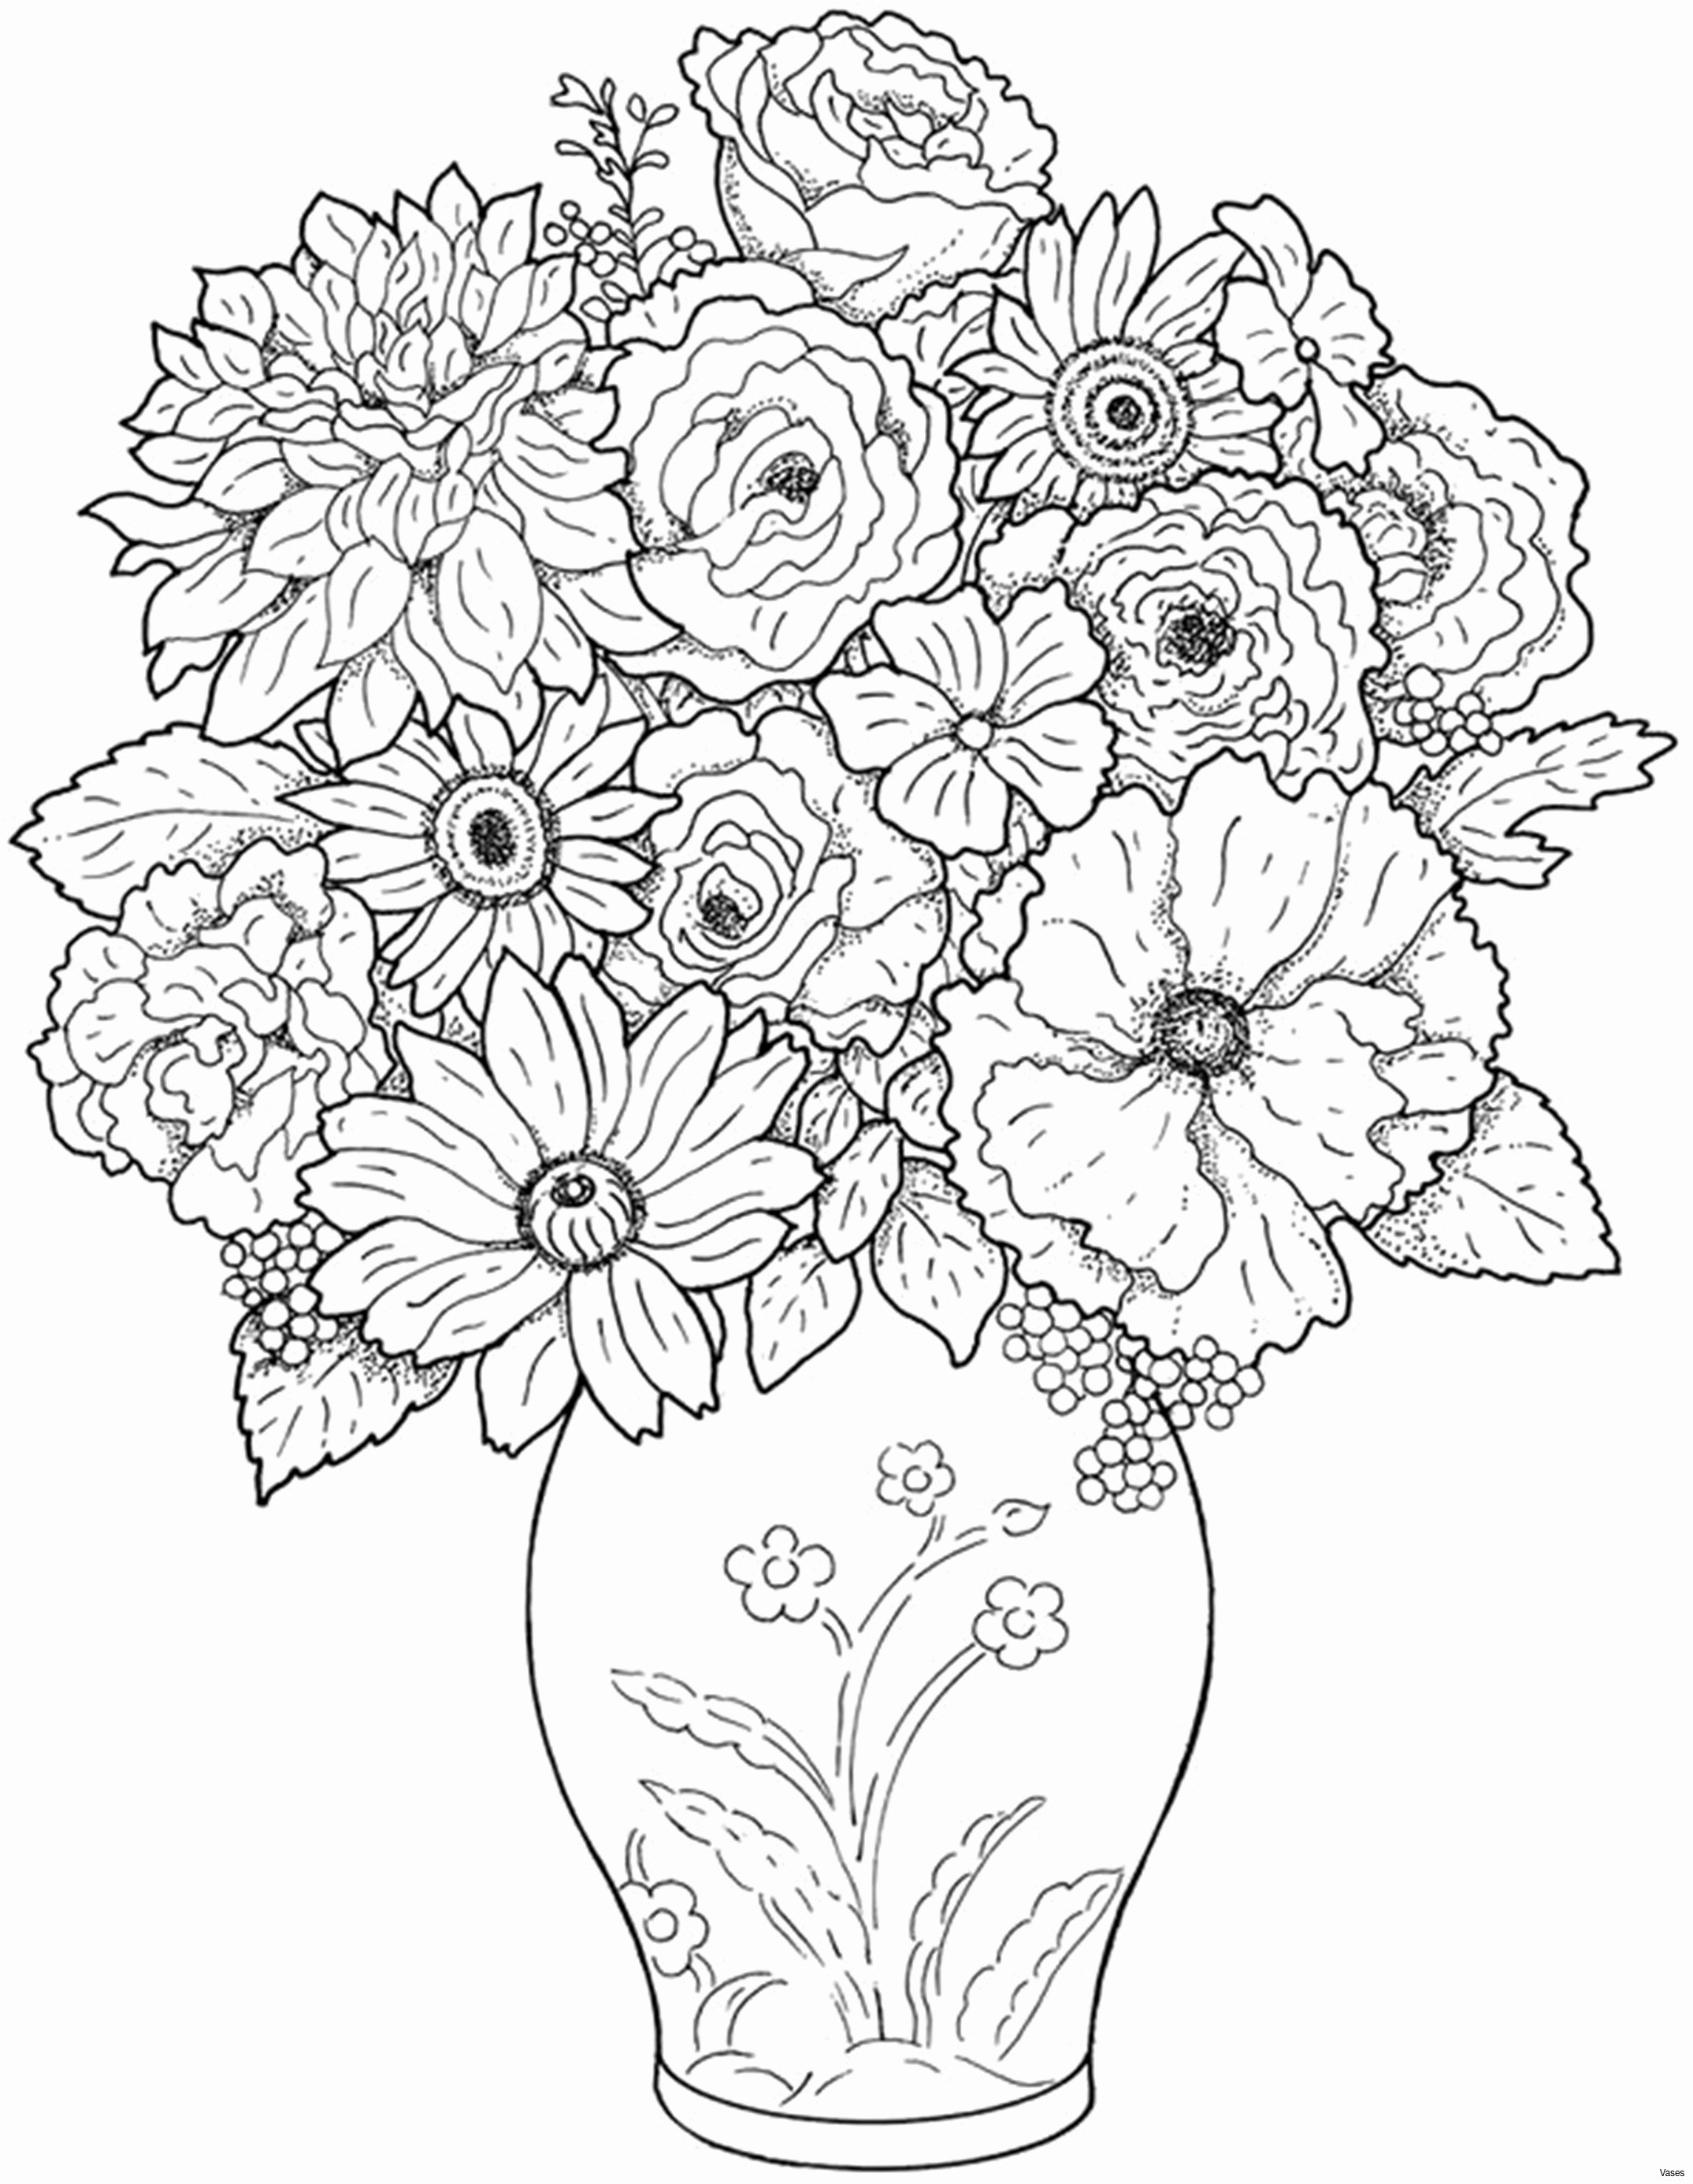 Colering Pages Lovely Cool Vases Flower Vase Coloring Page Pages Flowers In A top I 0d